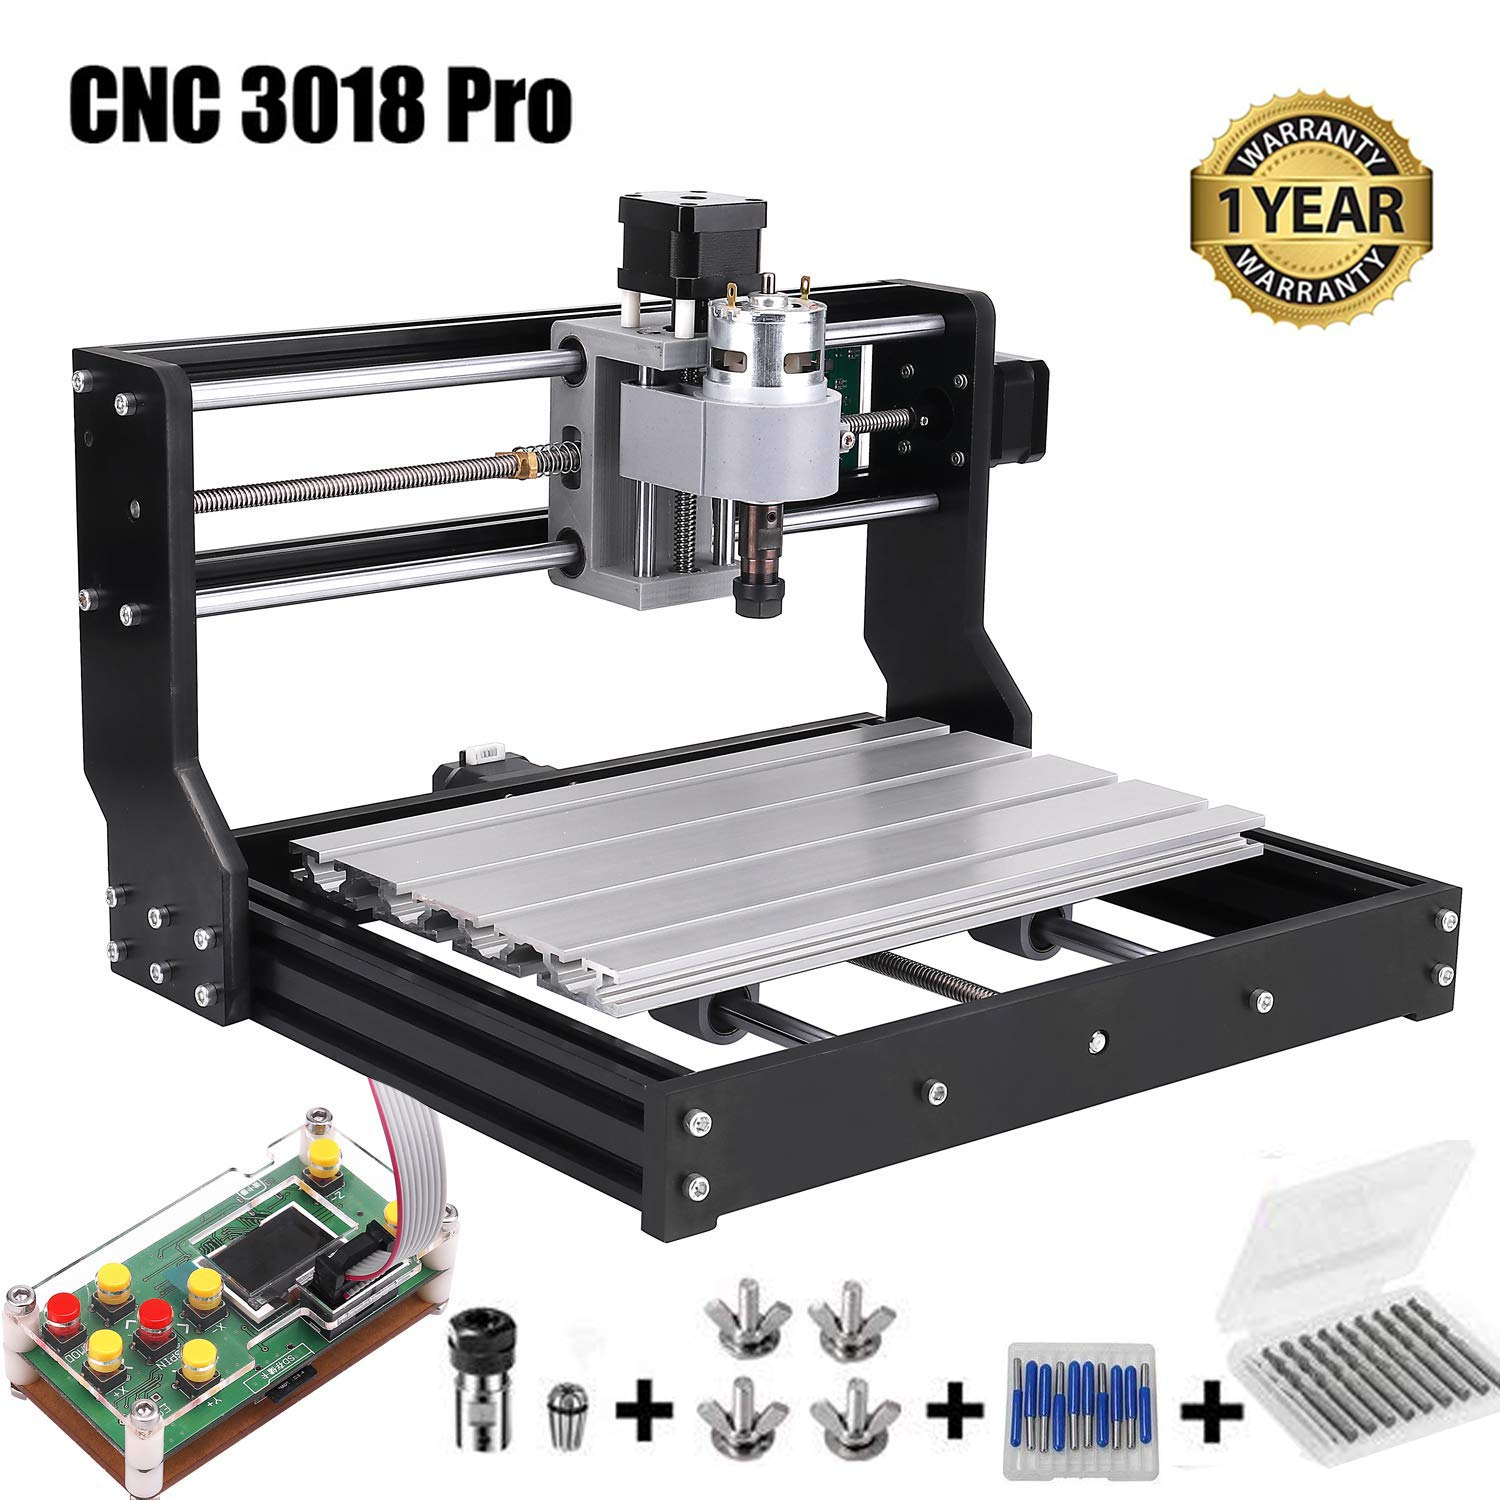 CNC 3018 Pro GRBL Control DIY Mini CNC Machine, 3 Axis PCB Milling Machine,  Wood Router Engraver with Offline Controller, with ER11 5mm Extension Rod